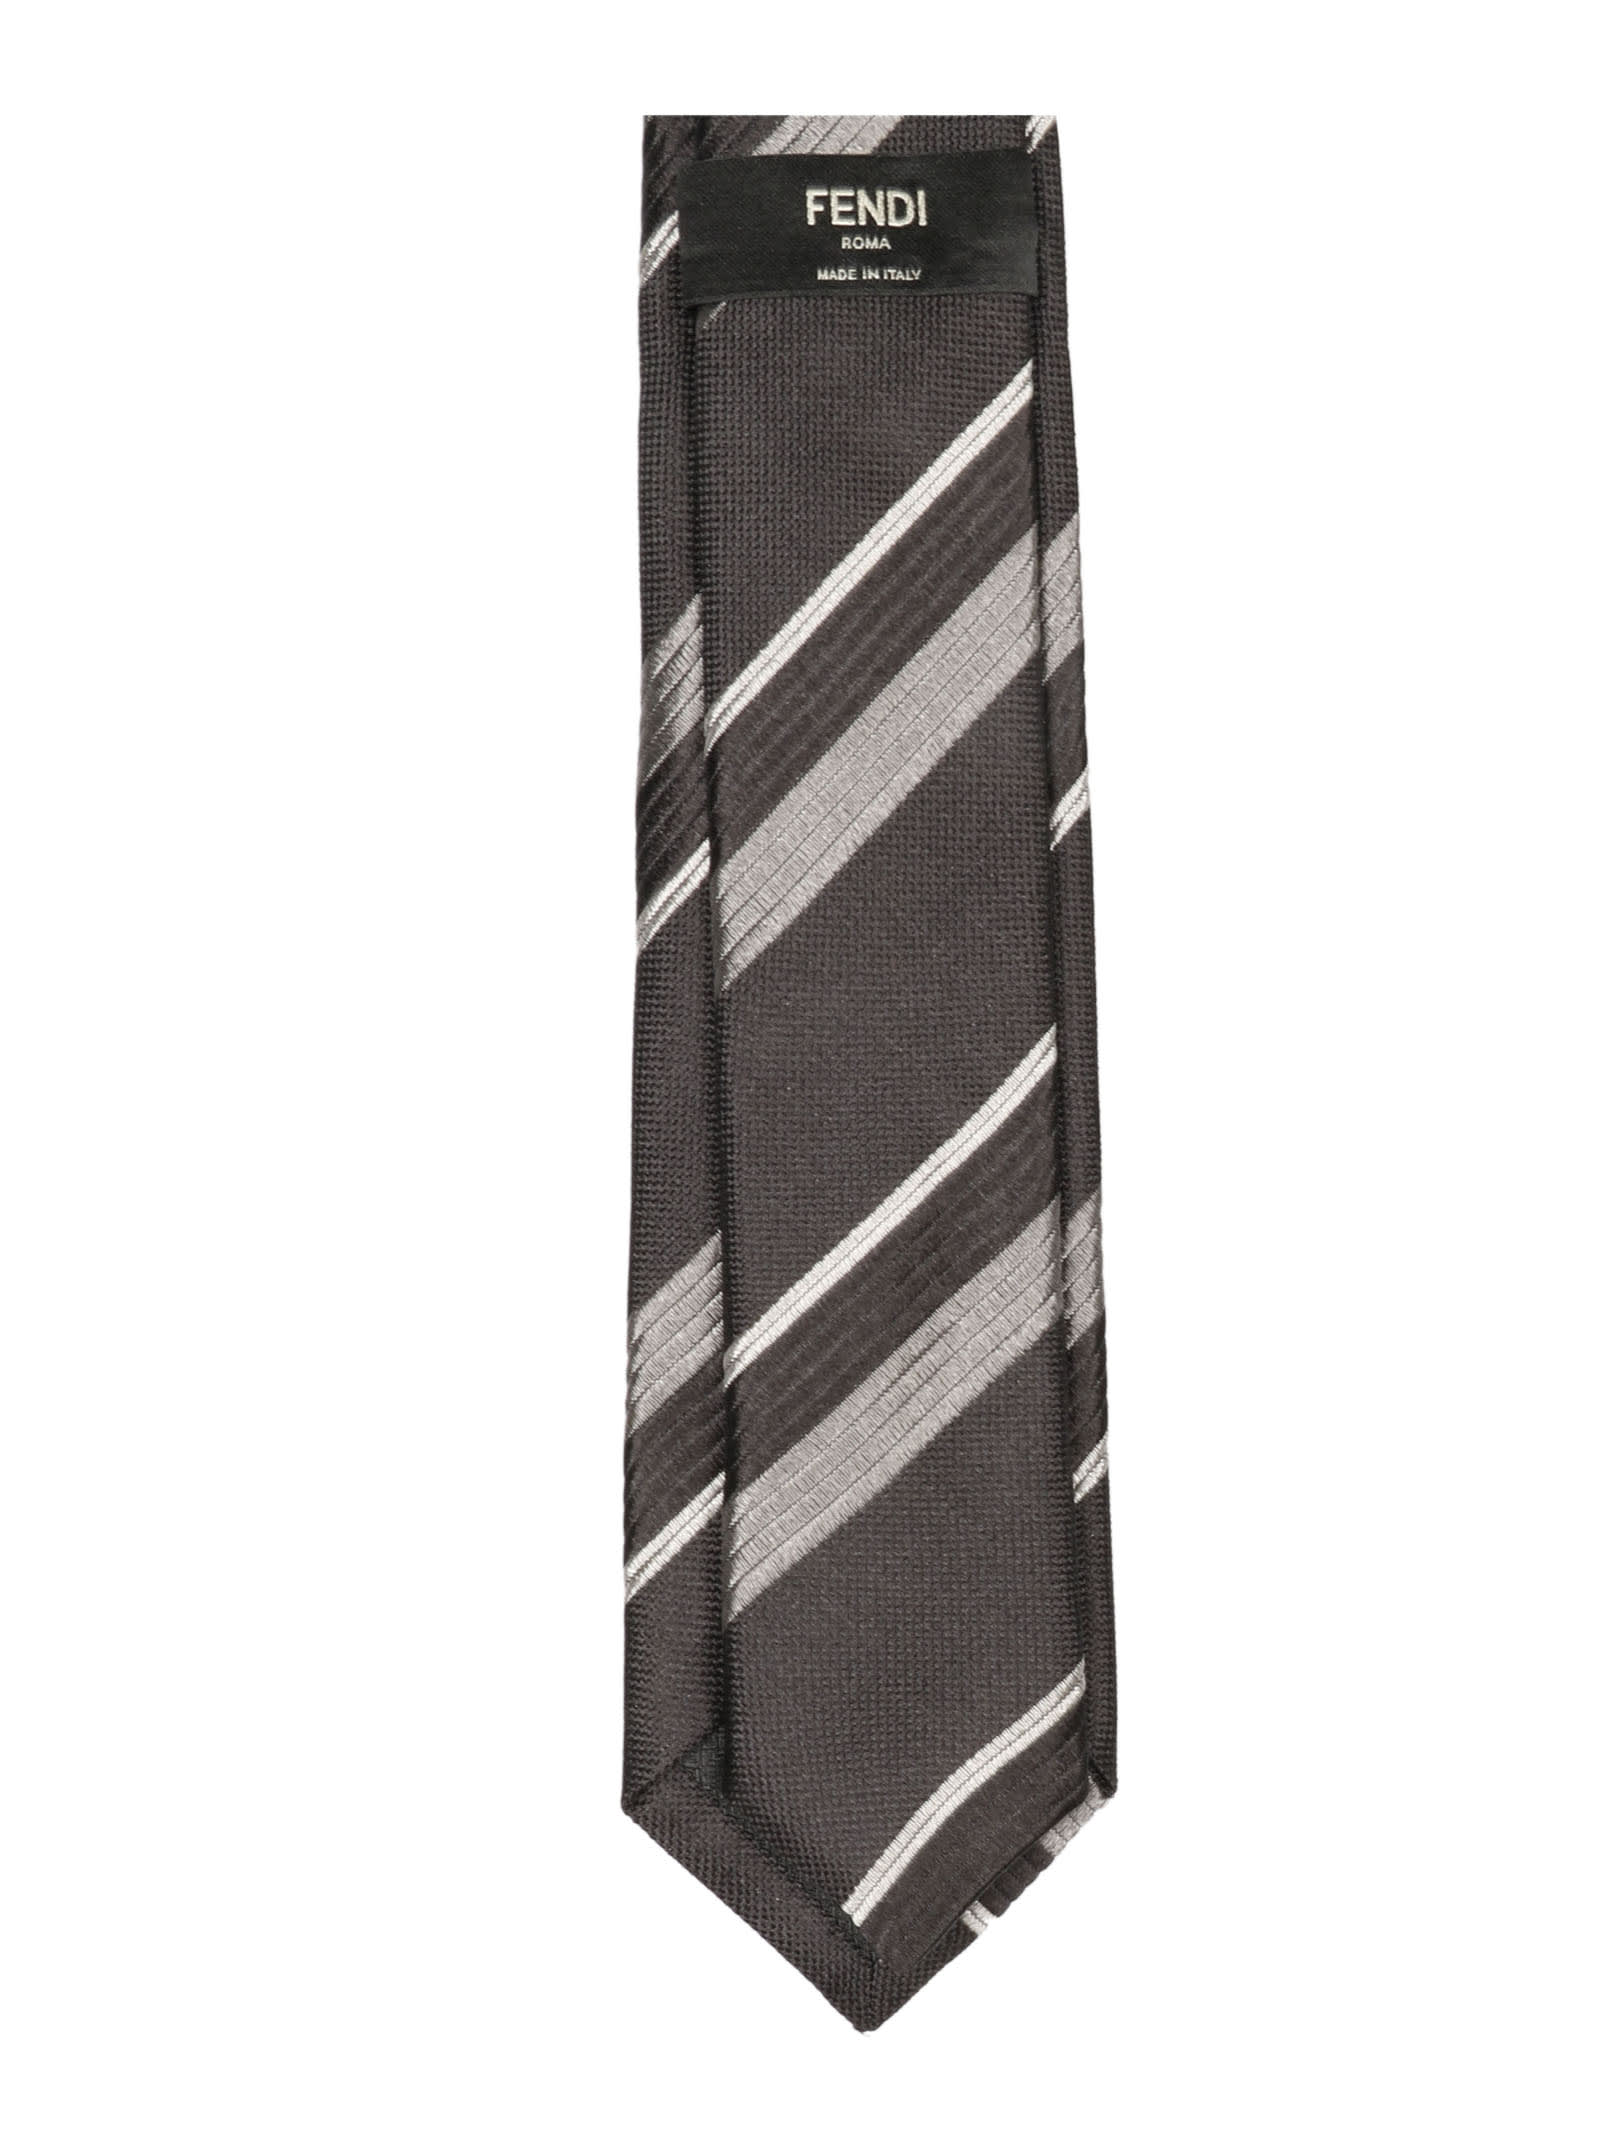 Fashion Style Fendi Diagonal Striped Tie